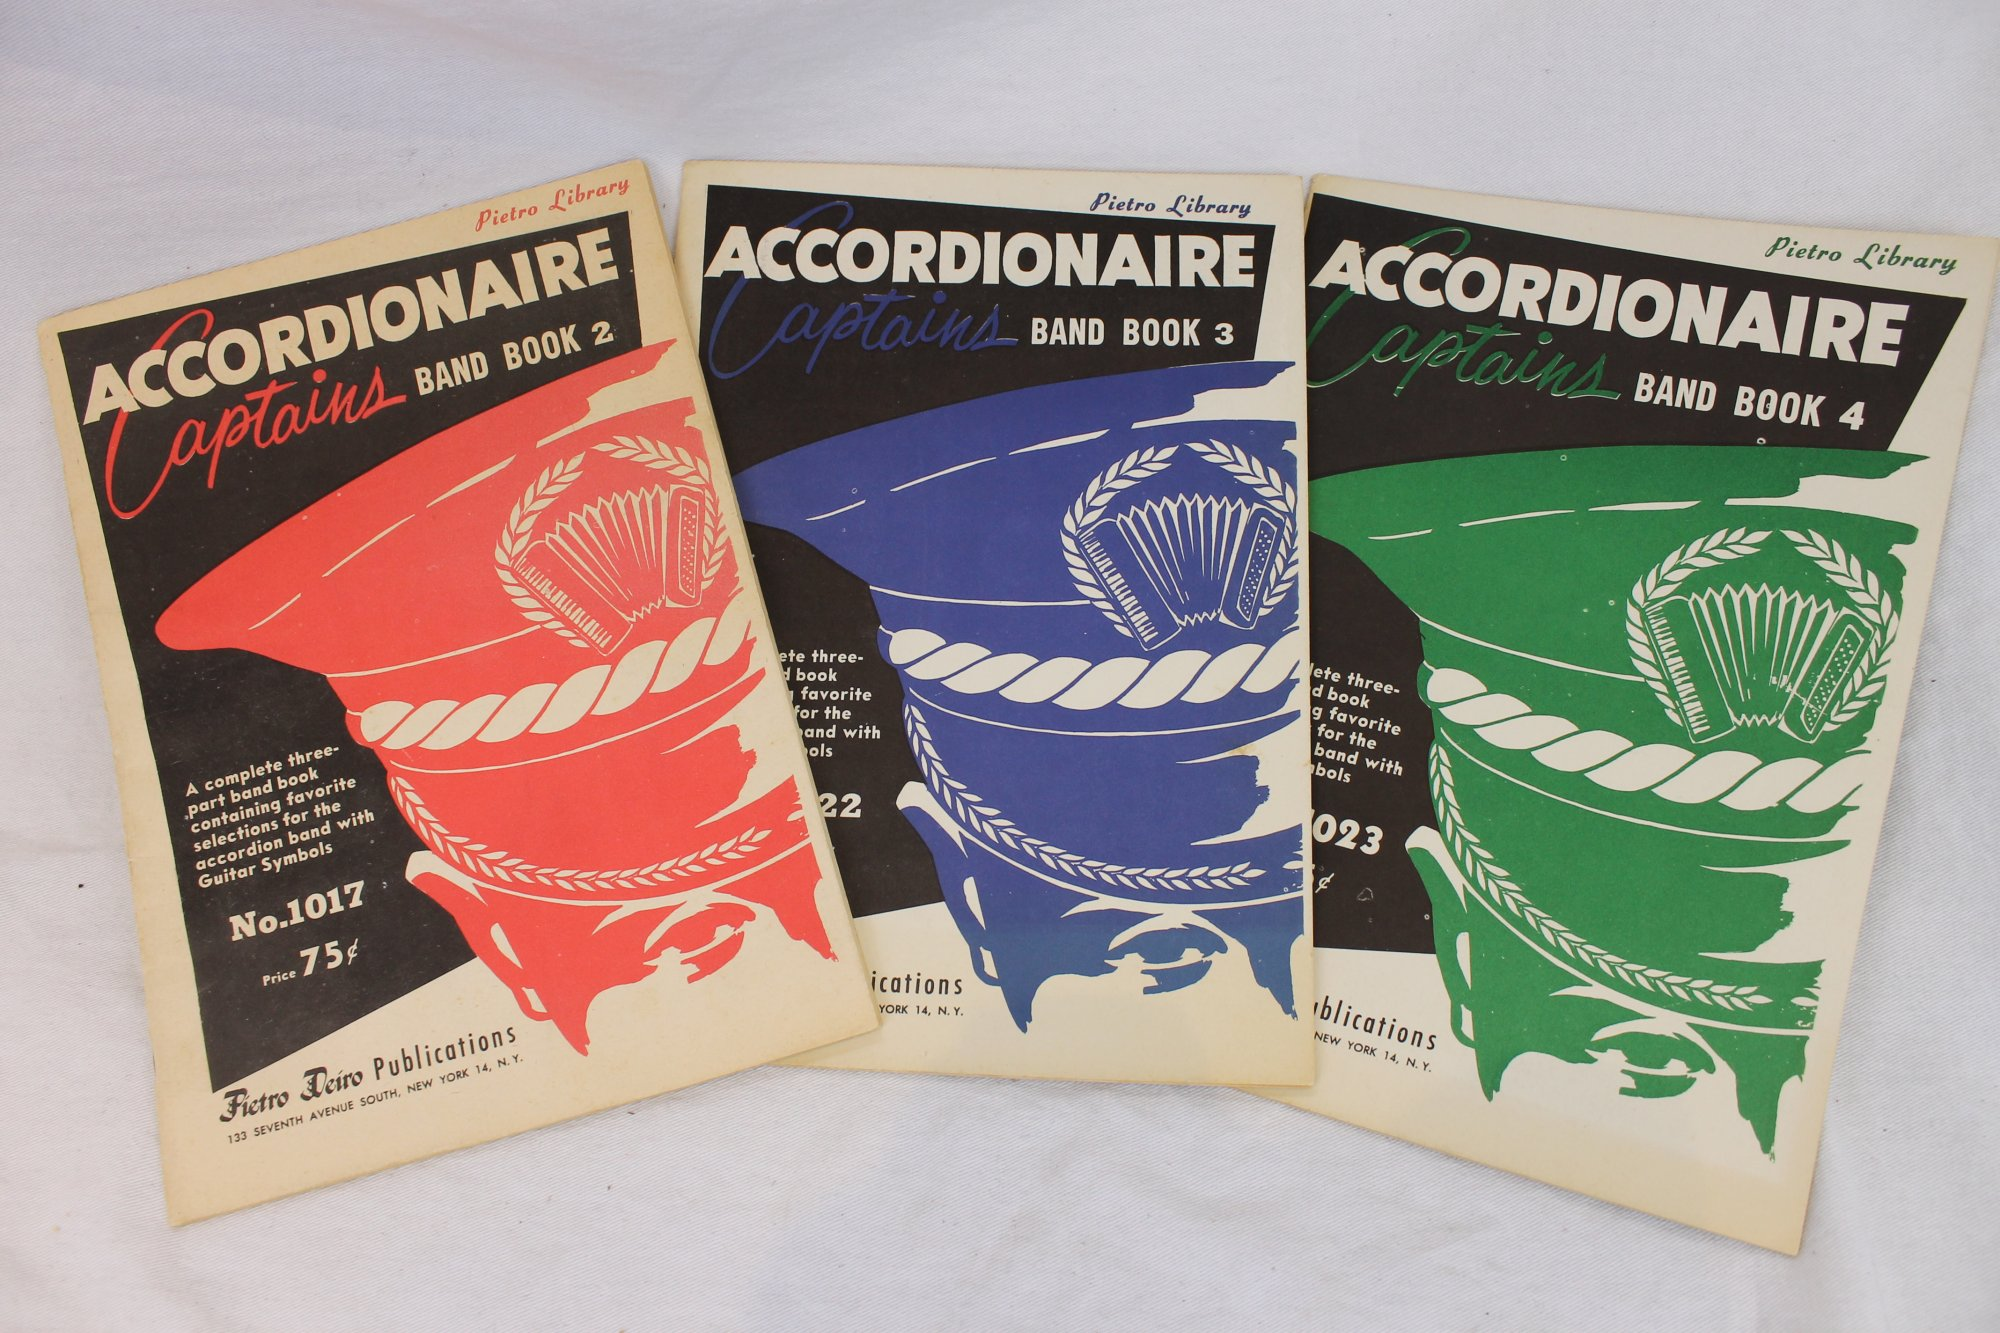 Lot of 3 Used Piano Accordion Books and Sheets - Arrangements for Three-Part Accordion Band